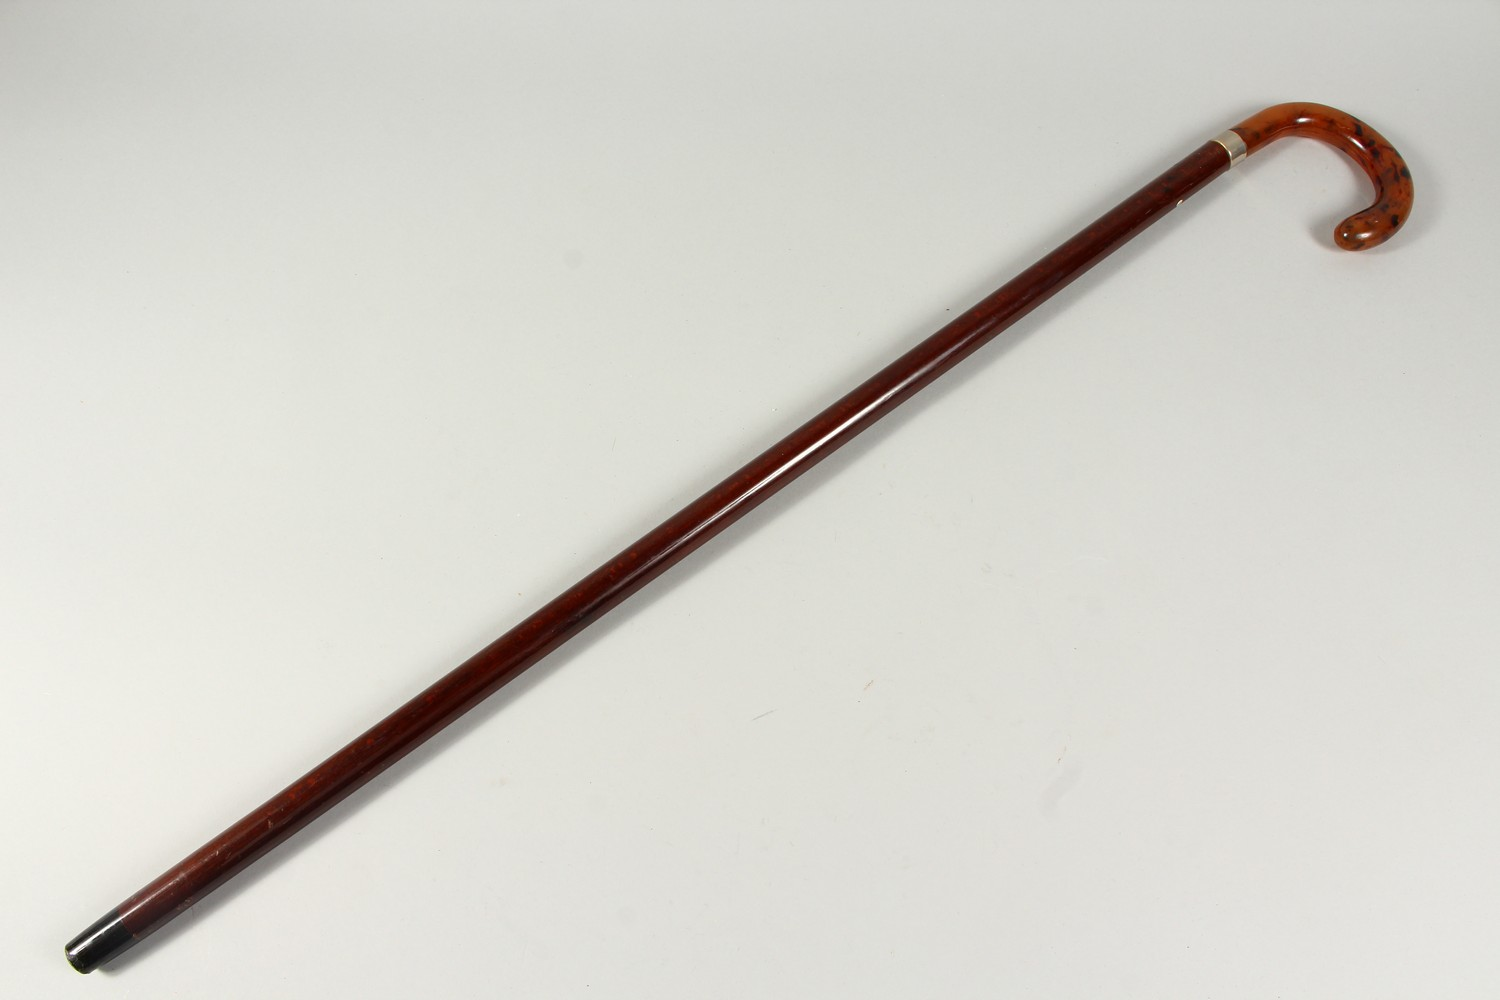 Lot 1532 - A WALKING STICK with faux-tortoiseshell handle and silver band. Birmingham. 2ft 1in long.